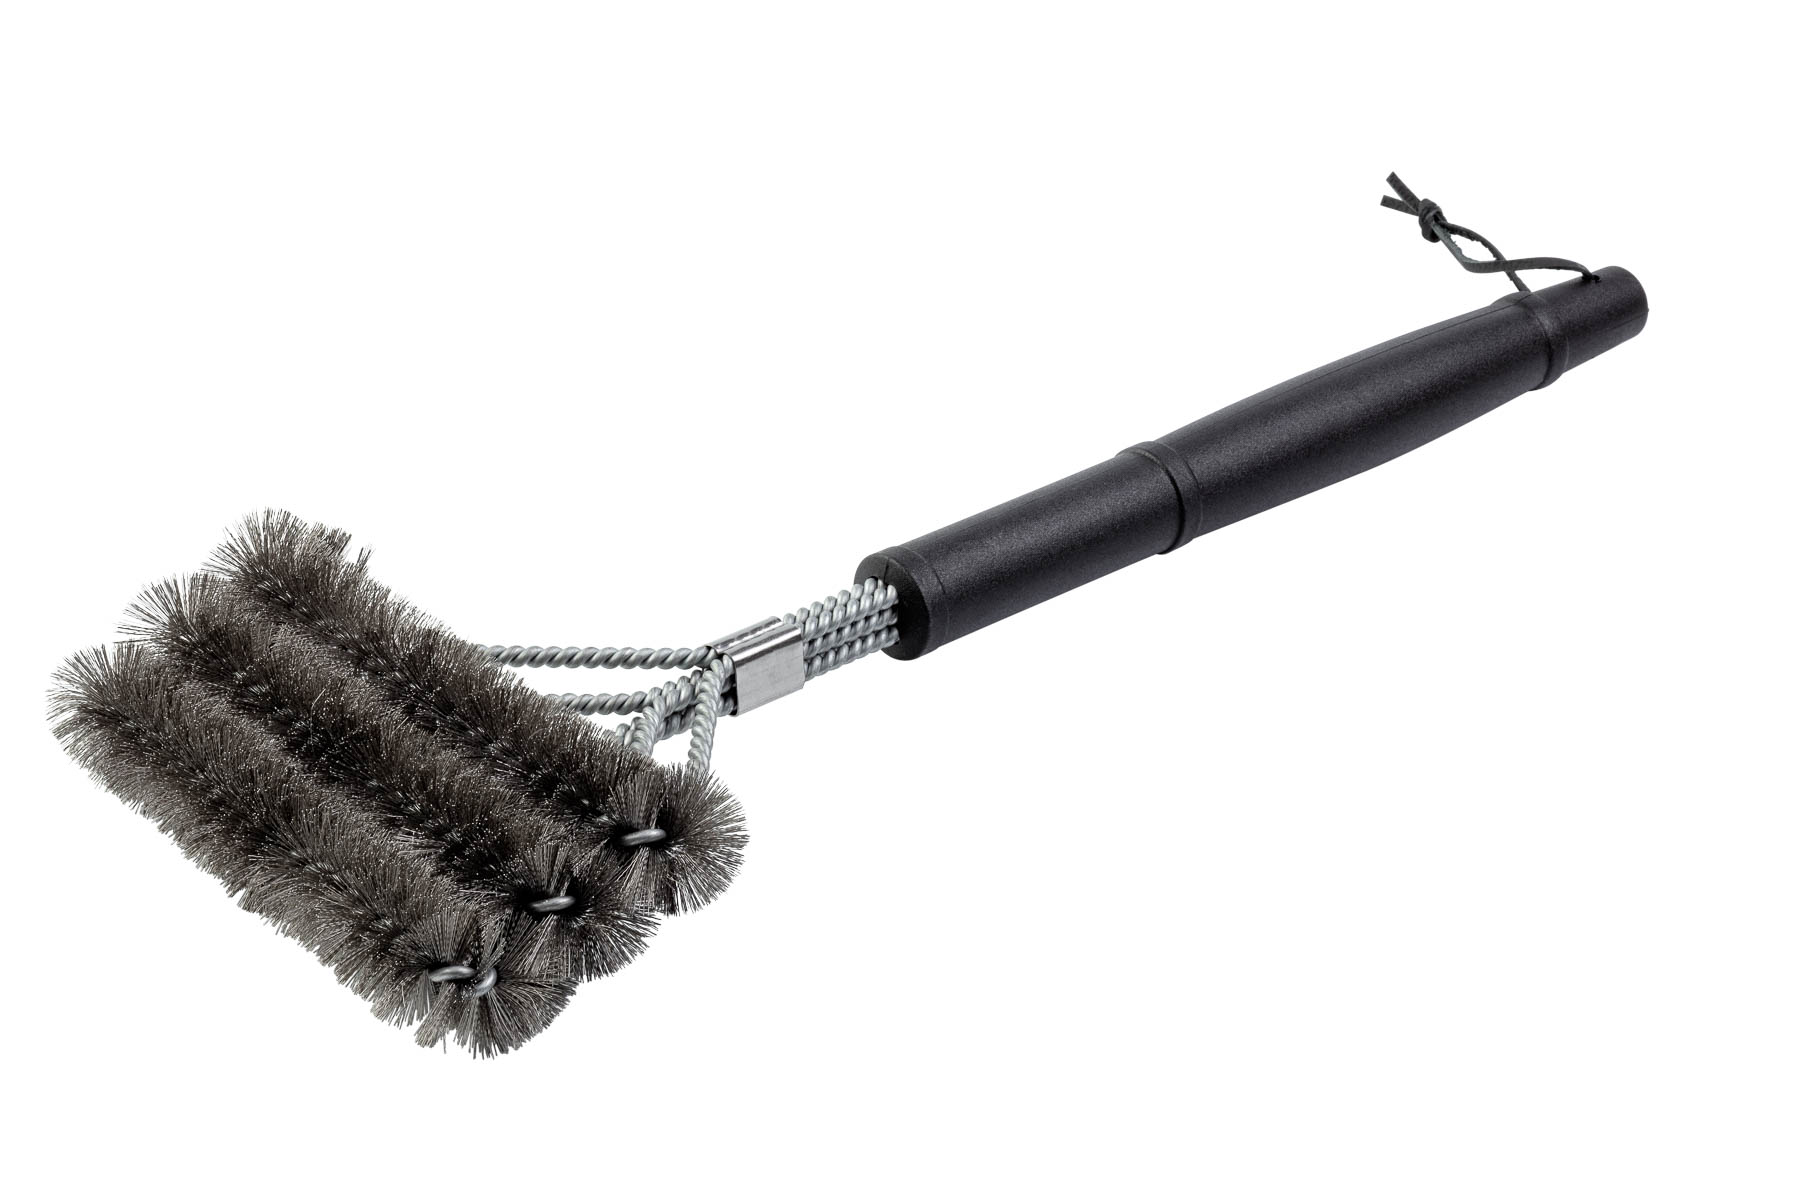 BBQ Brush full product on reverse angle - sample for Amazon website